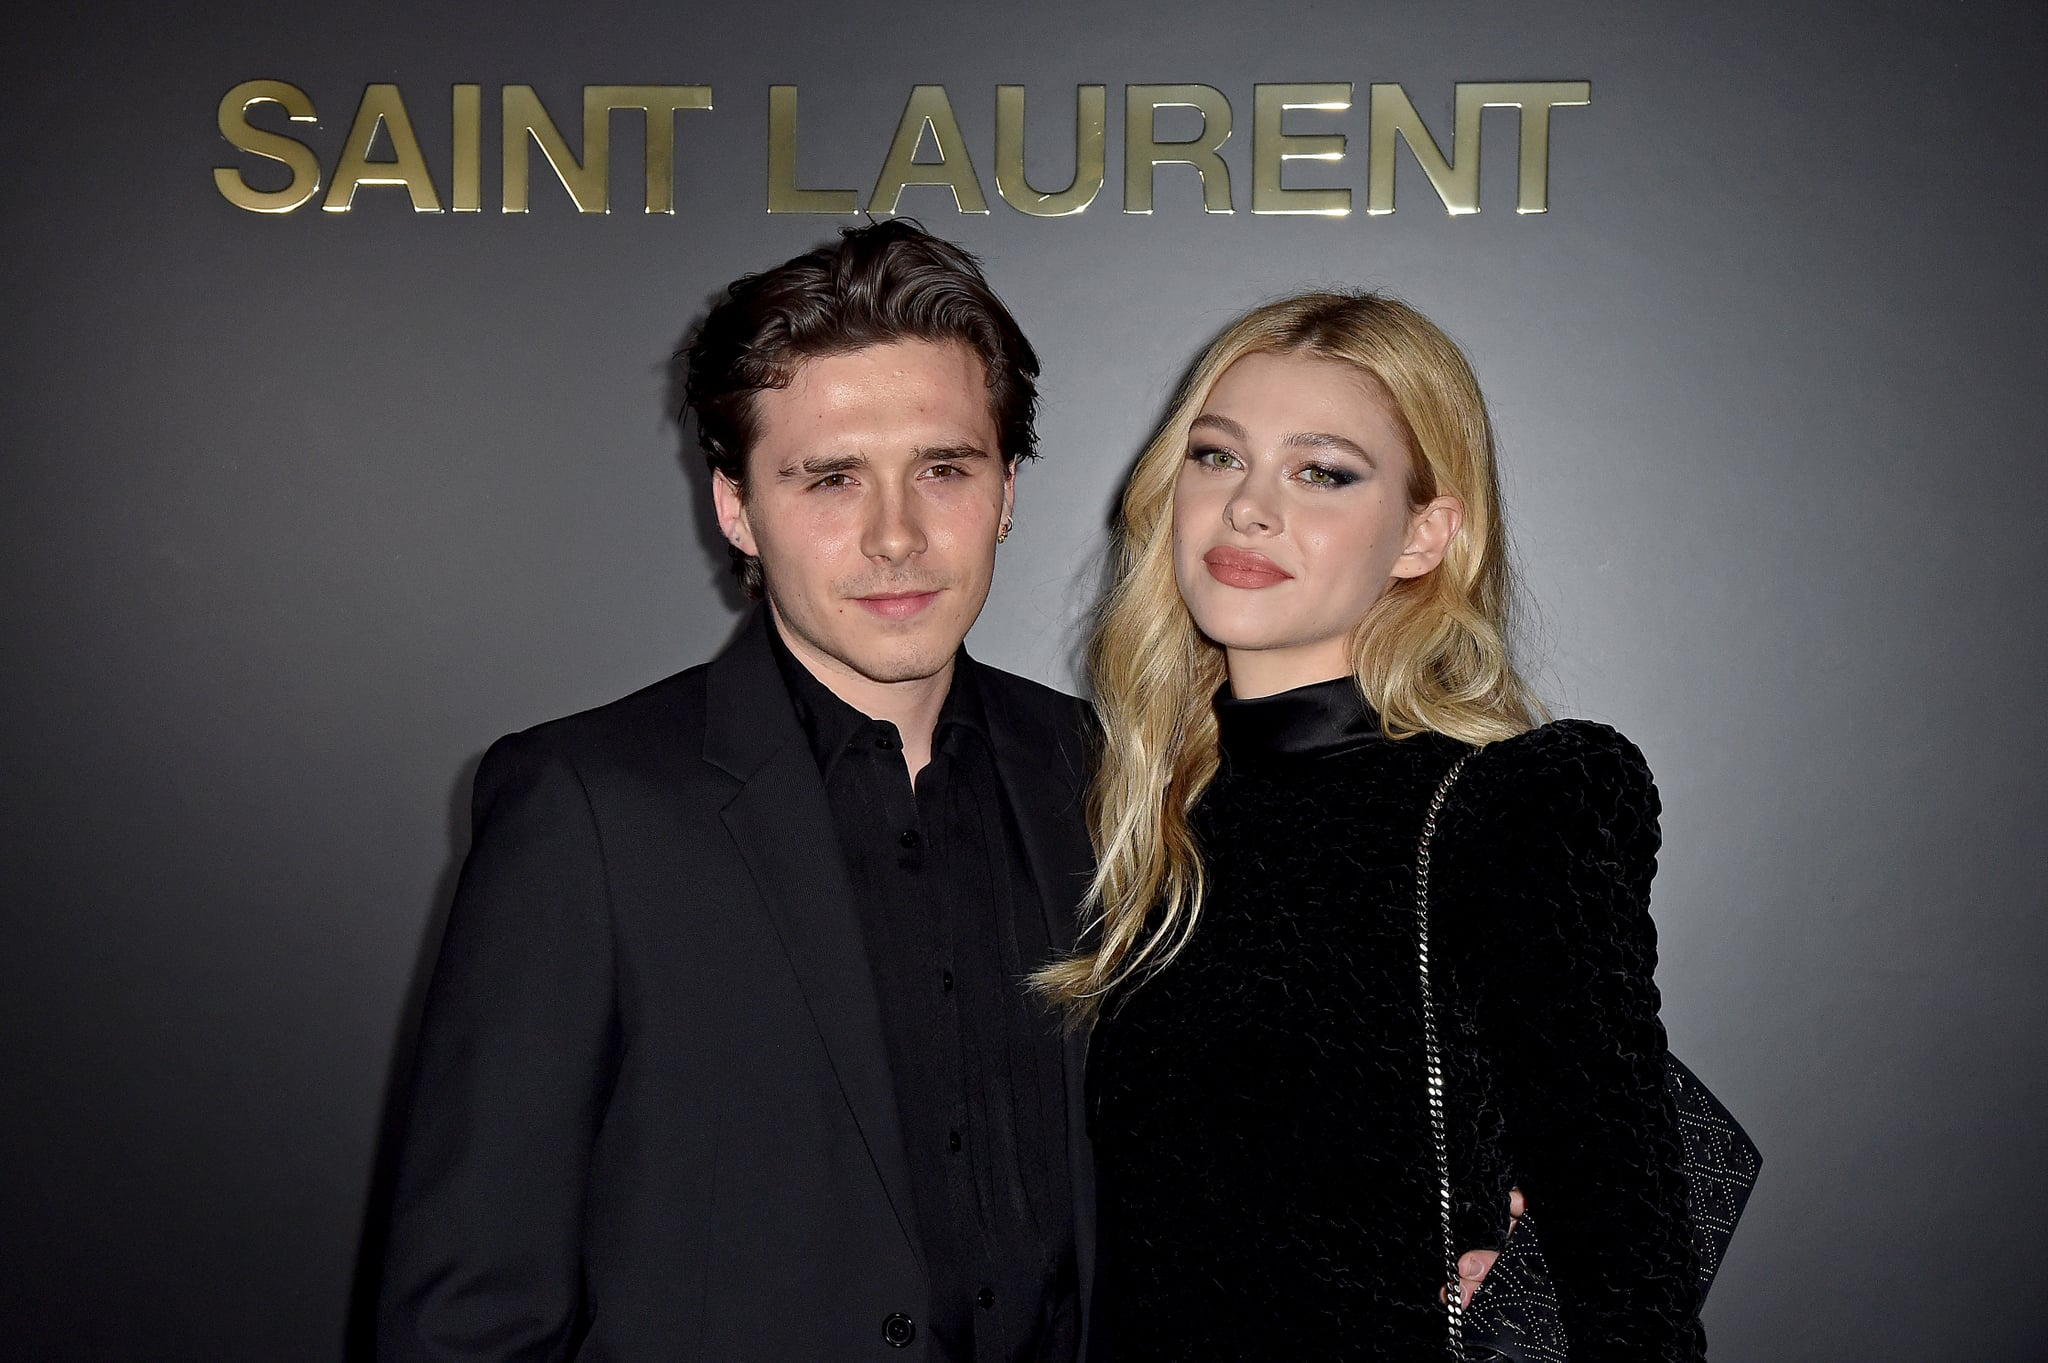 PARIS, FRANCE - FEBRUARY 25: (EDITORIAL USE ONLY) Brooklyn Beckham and Nicola Peltz attends the Saint Laurent show as part of the Paris Fashion Week Womenswear Fall/Winter 2020/2021 on February 25, 2020 in Paris, France. (Photo by Dominique Charriau/WireImage)